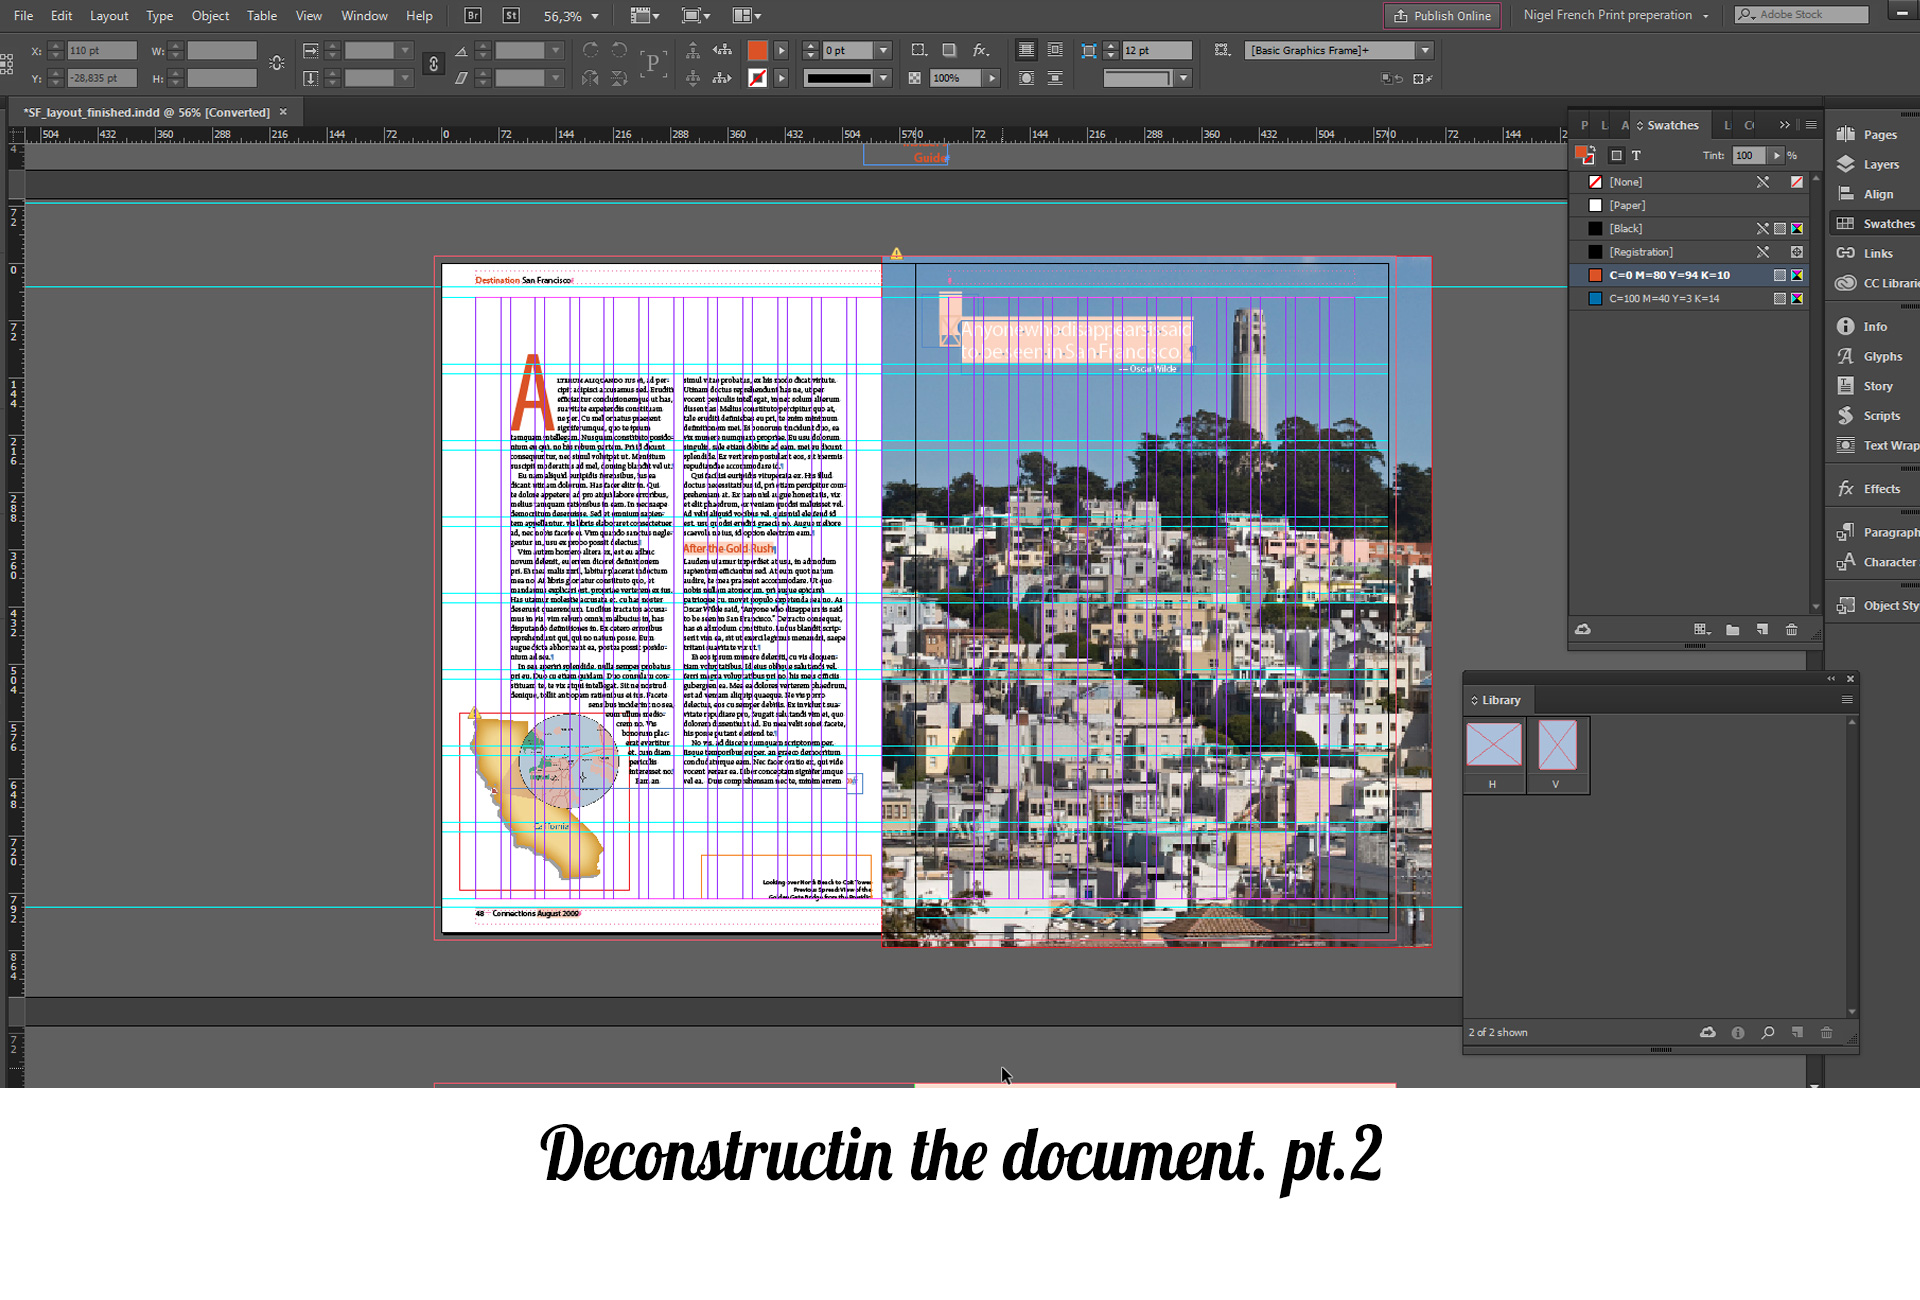 deconstructing-the-document-pt-2